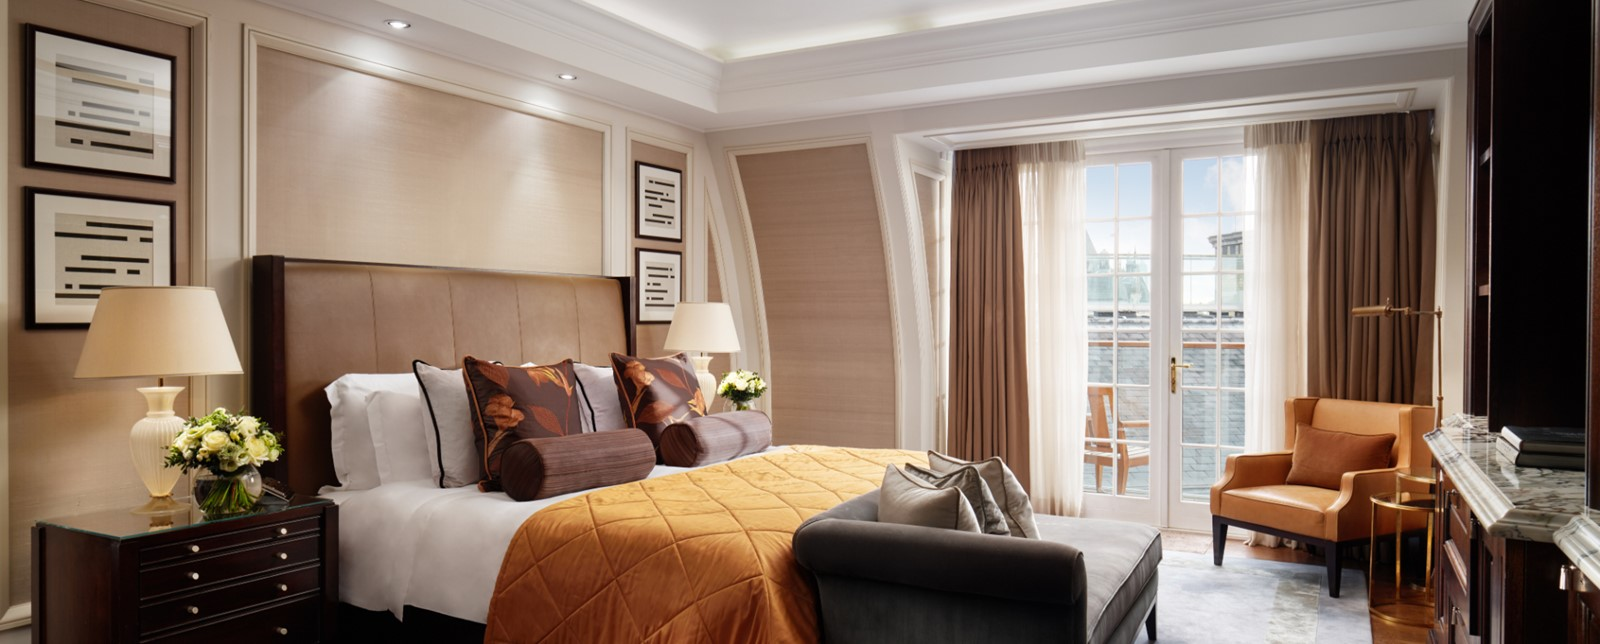 corinthia london writers penthouse bedroom